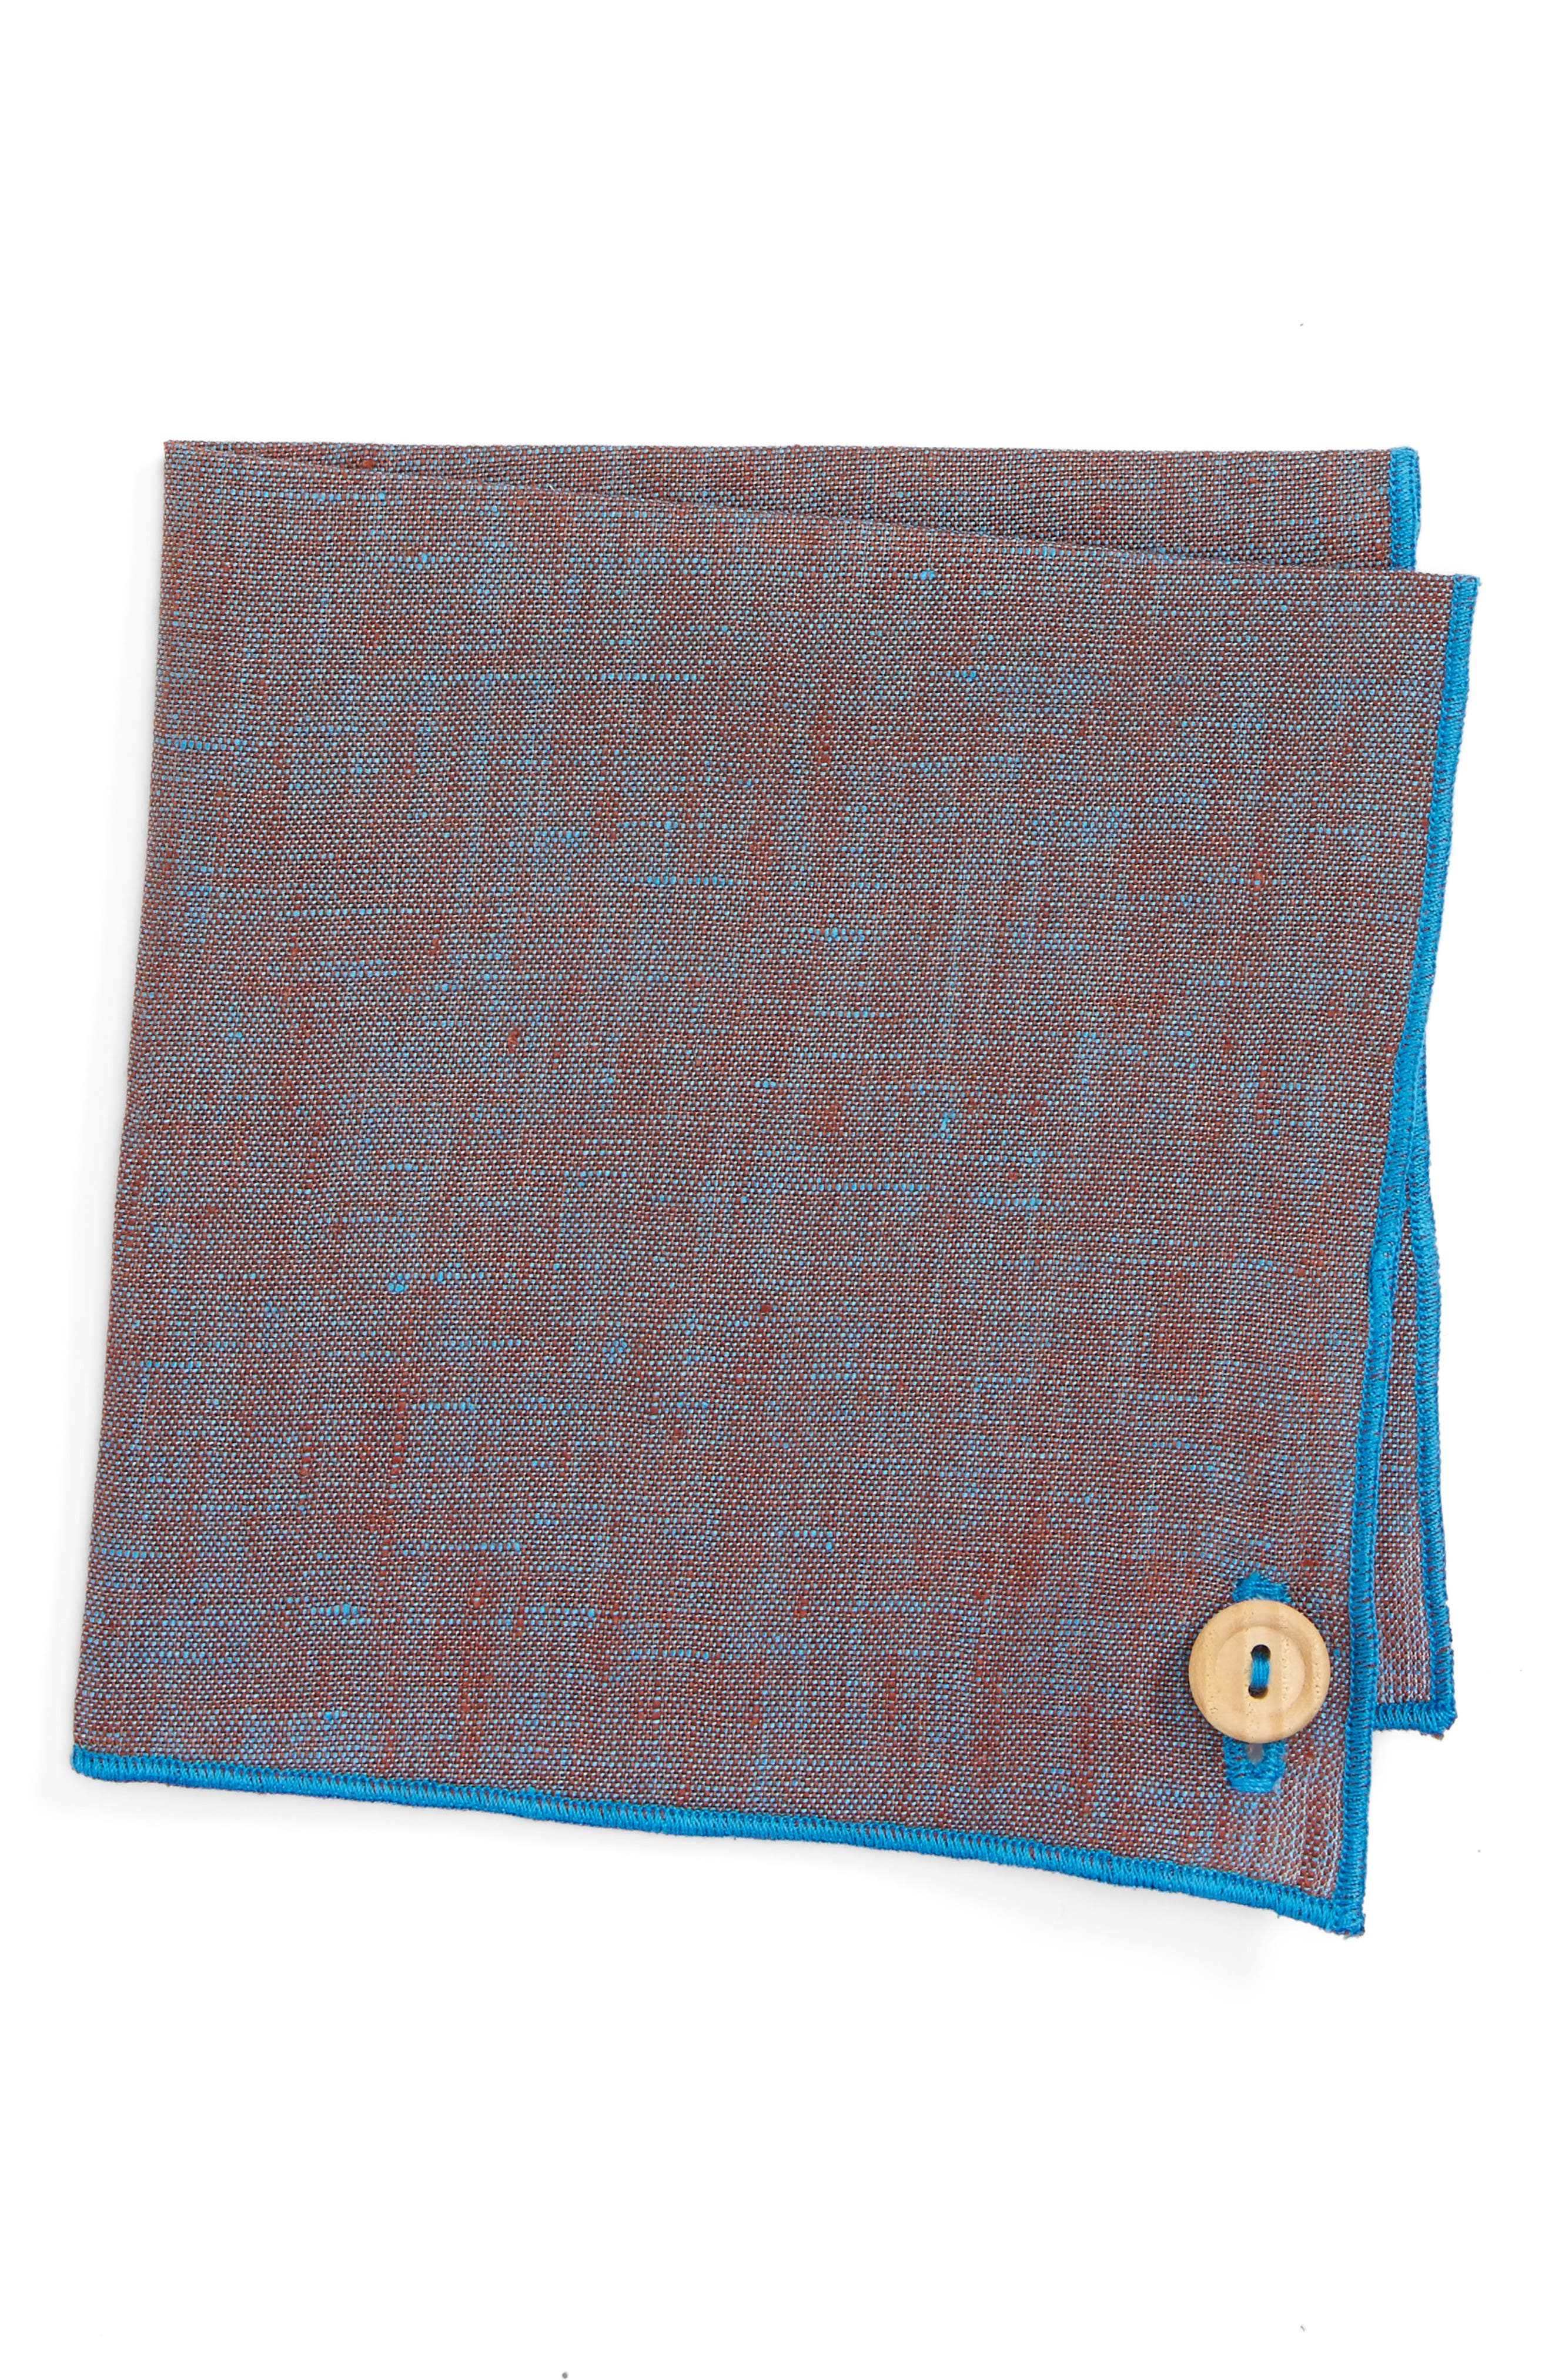 Armstrong & Wilson Iridescent Glass Linen Pocket Square